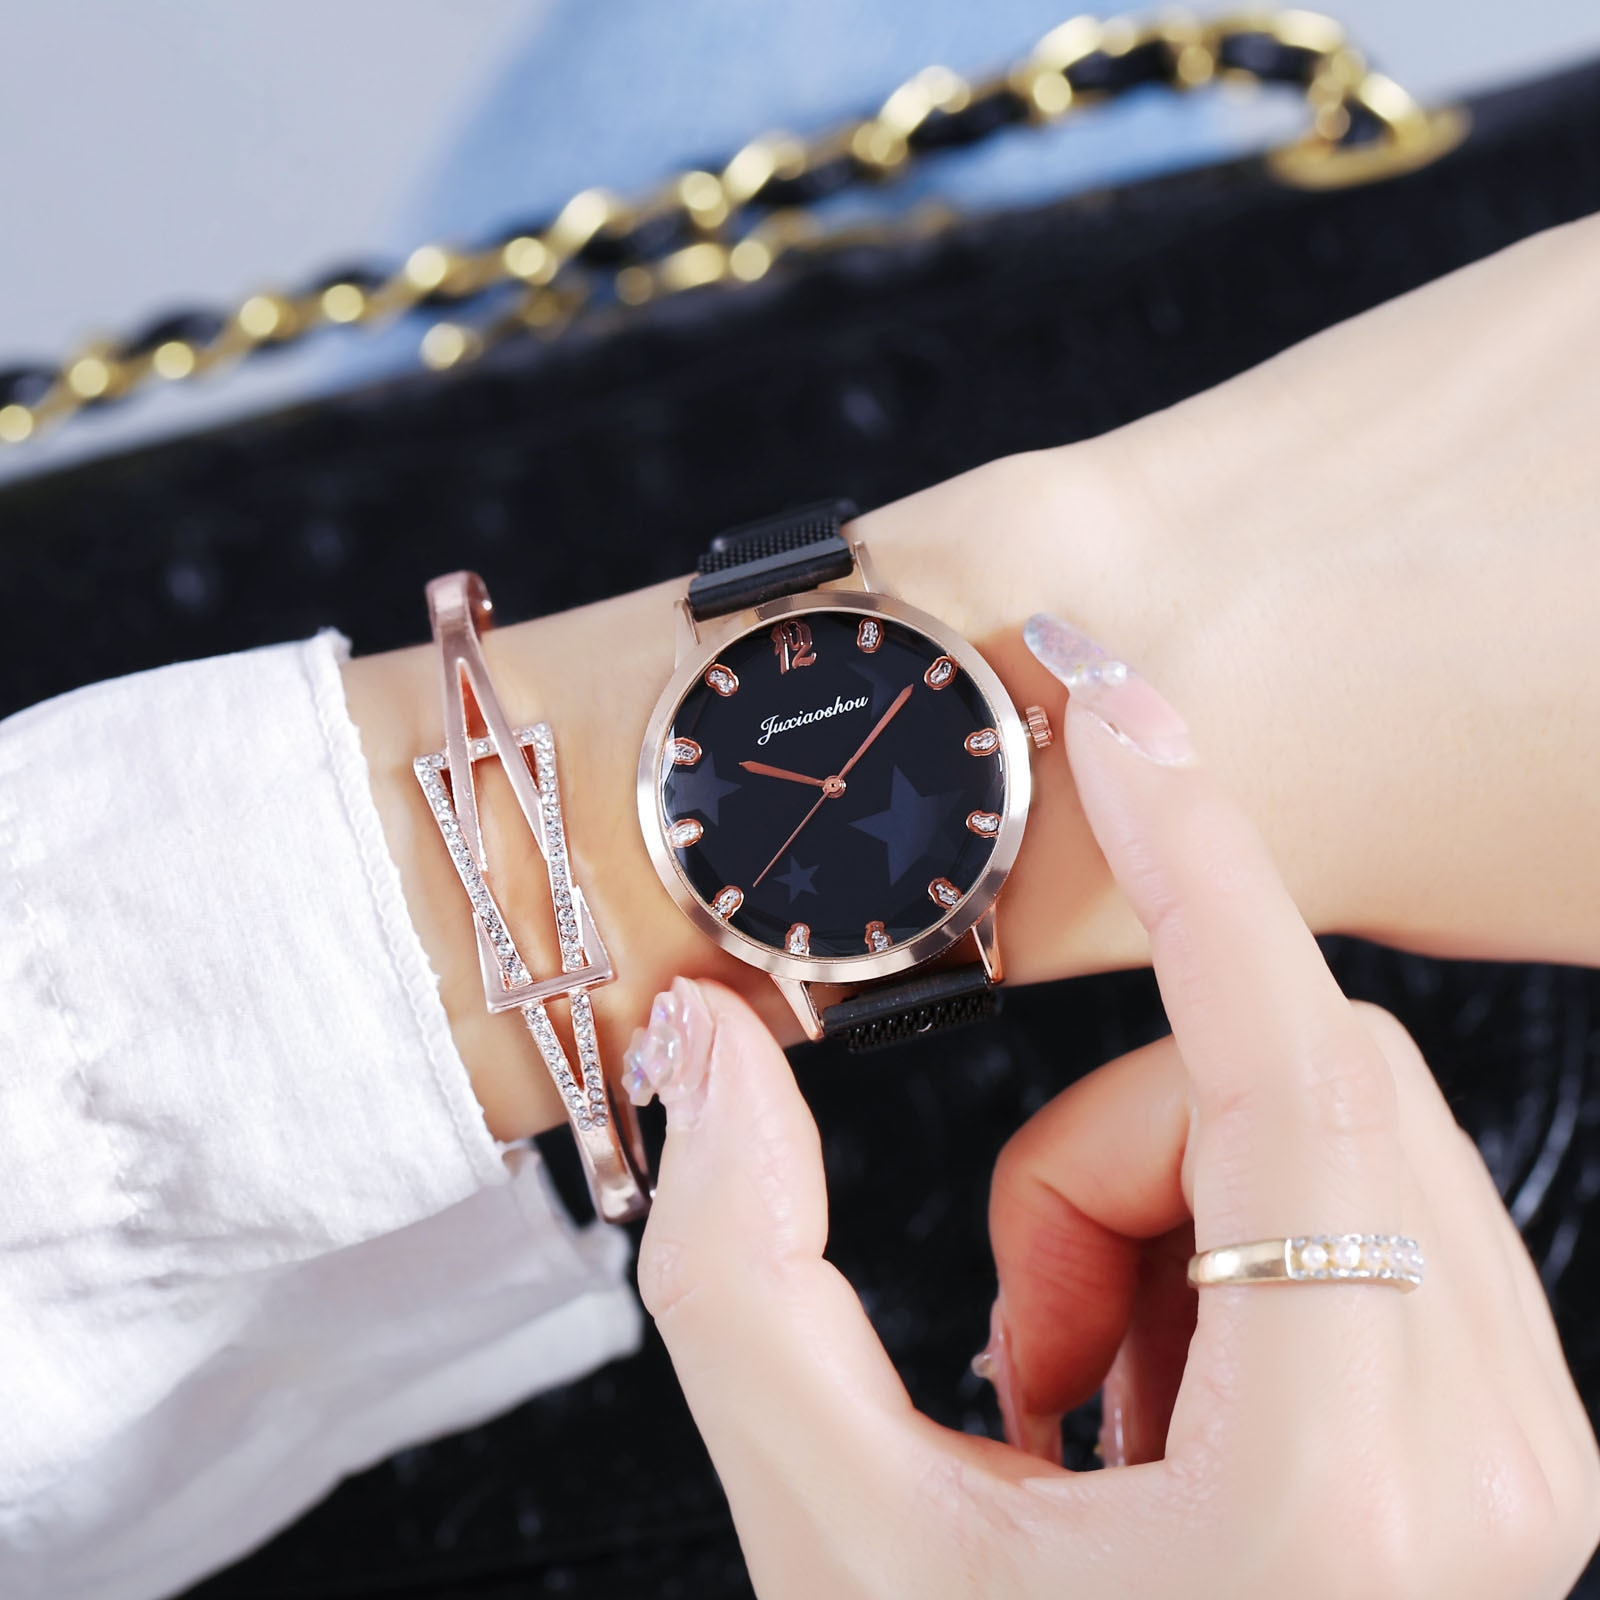 Fashion Quartz Luxury Small Diamond Dial Womens Watch For Girls Gift Watch Stainless Steel Wristband Watches Relojes Para Mujer anke store new womens bracelet watch diamond small dial fashion luxury elegant quartz gold women watches relojes para mujer